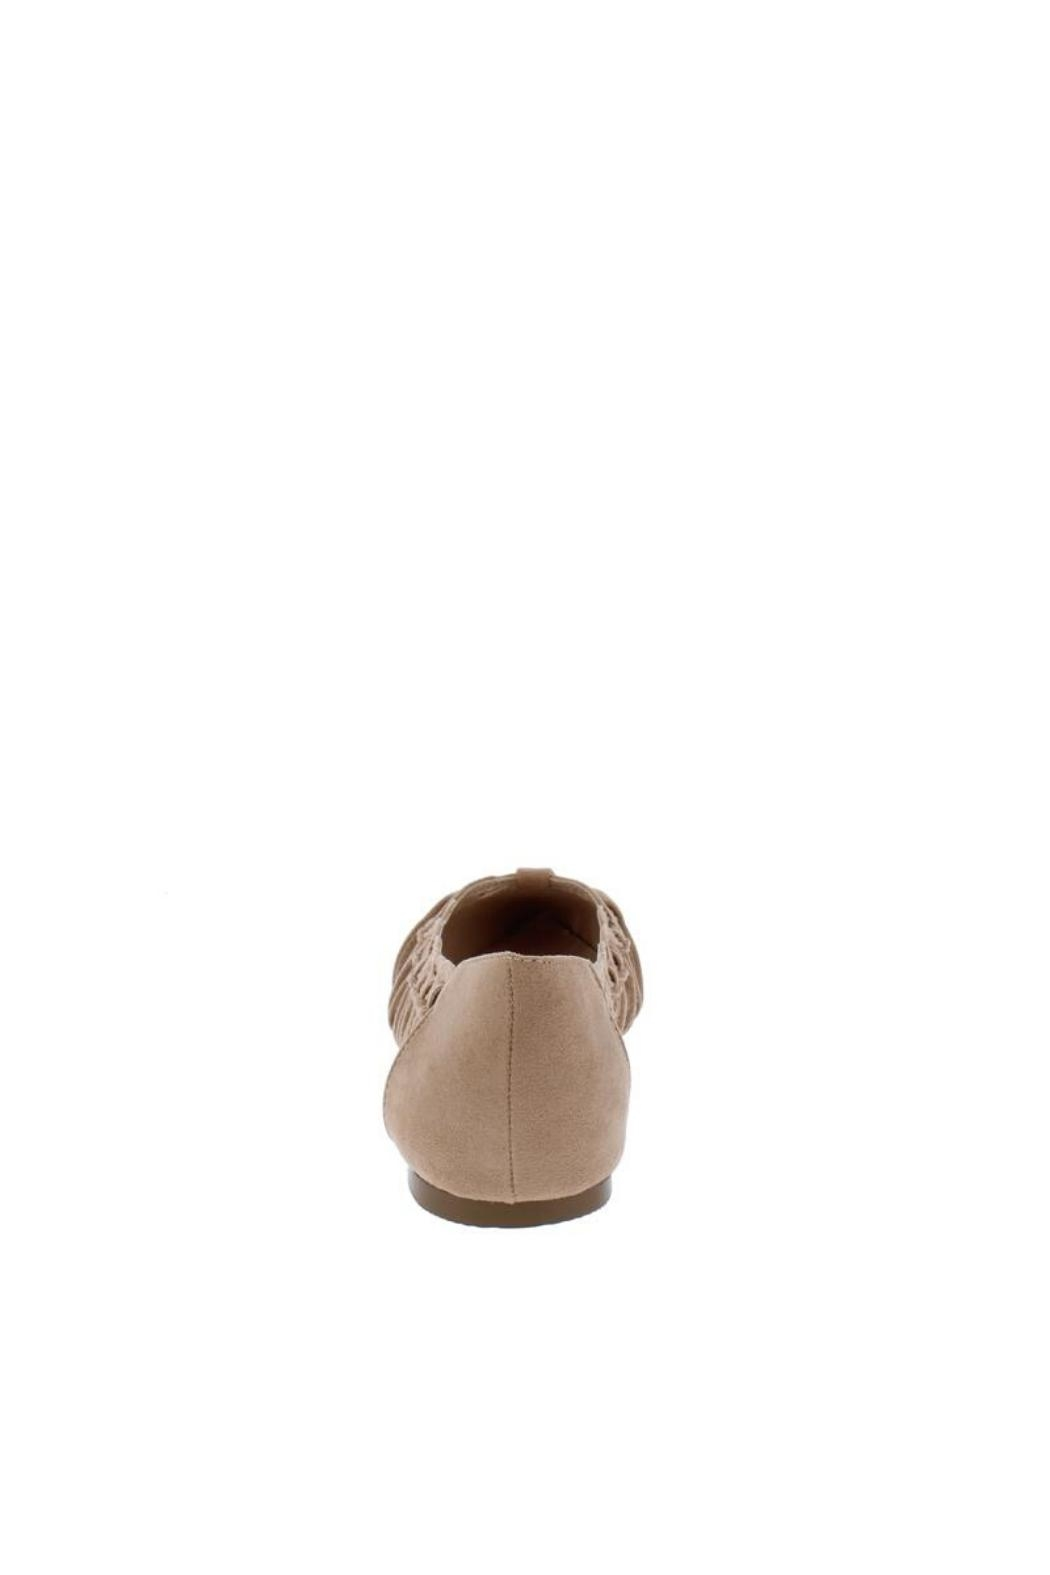 Shoe Republica Woven Taupe Flat - Side Cropped Image